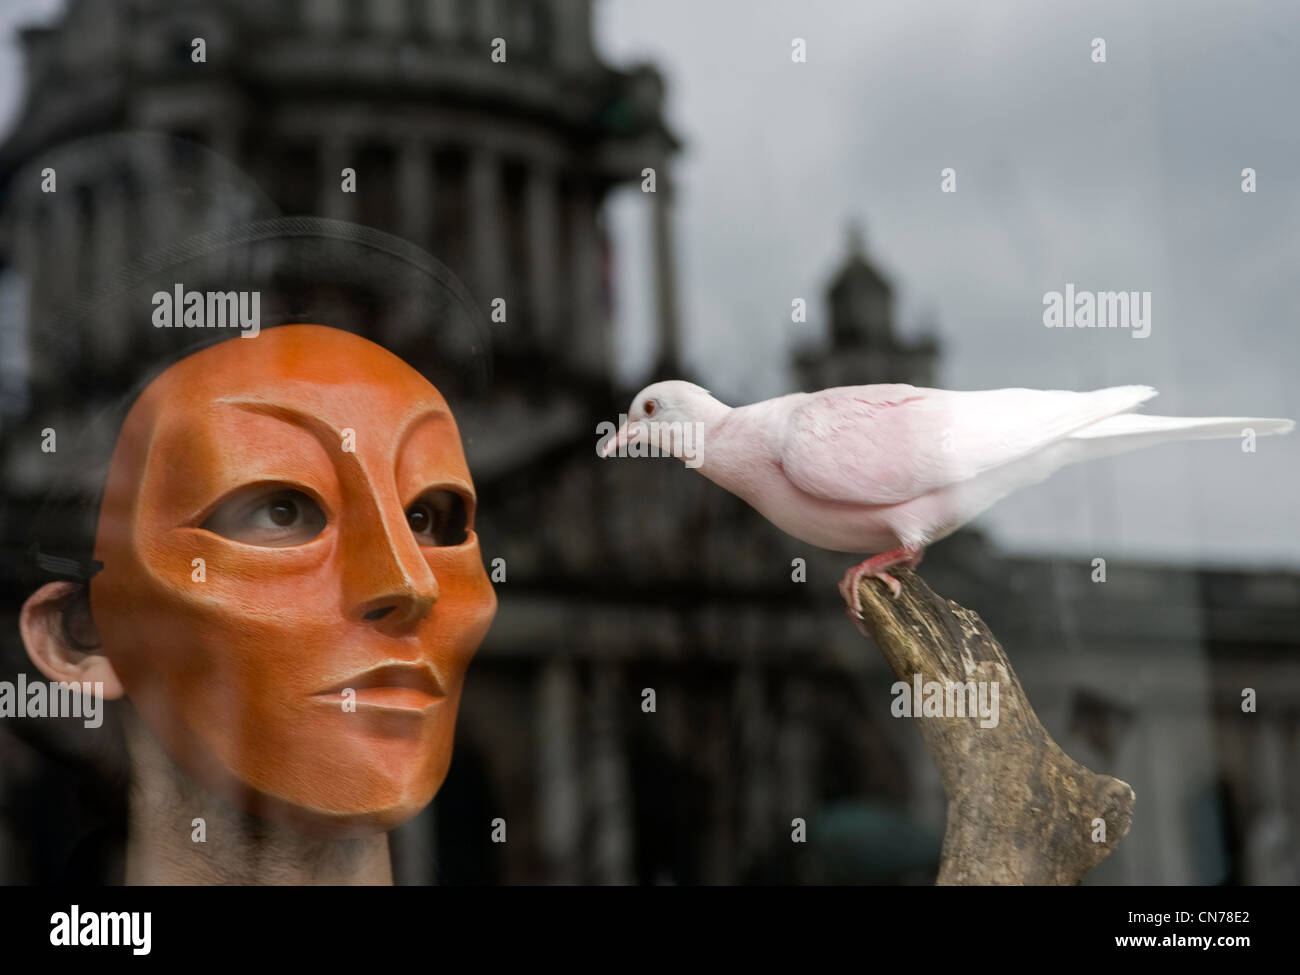 Masked man with colored dove, City Hall, Belfast. - Stock Image